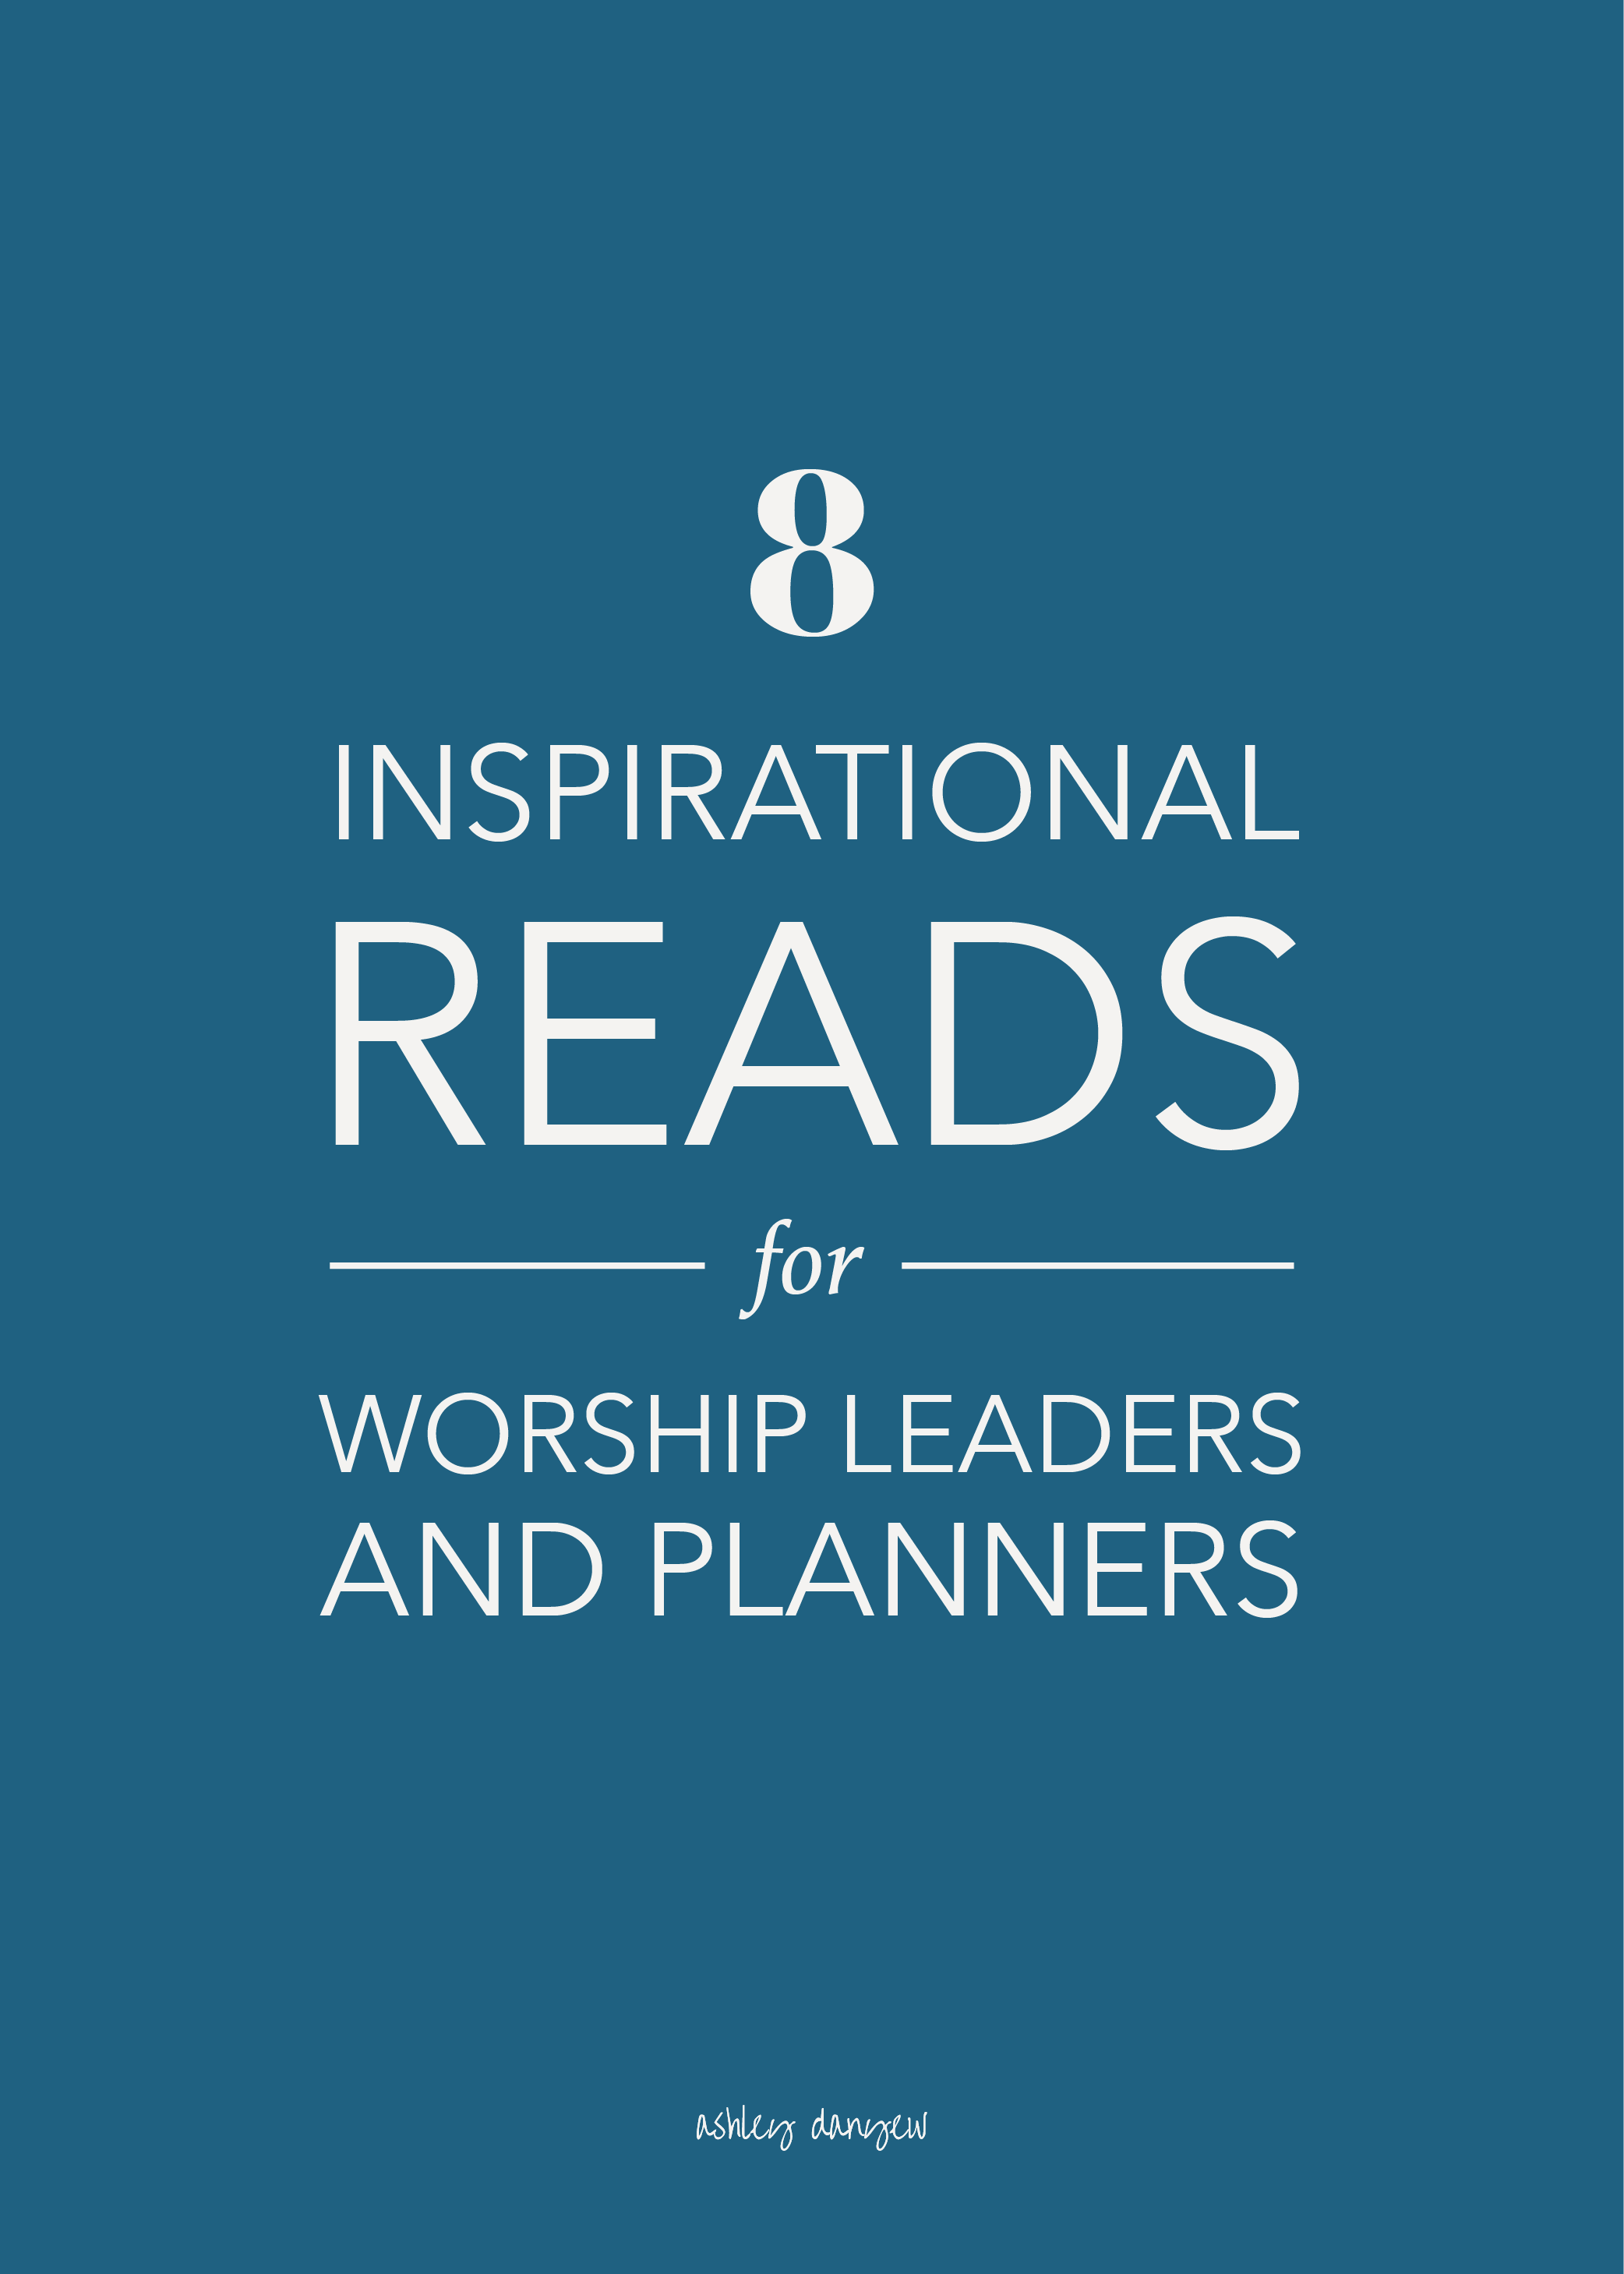 8 Inspirational Reads for Worship Leaders and Planners